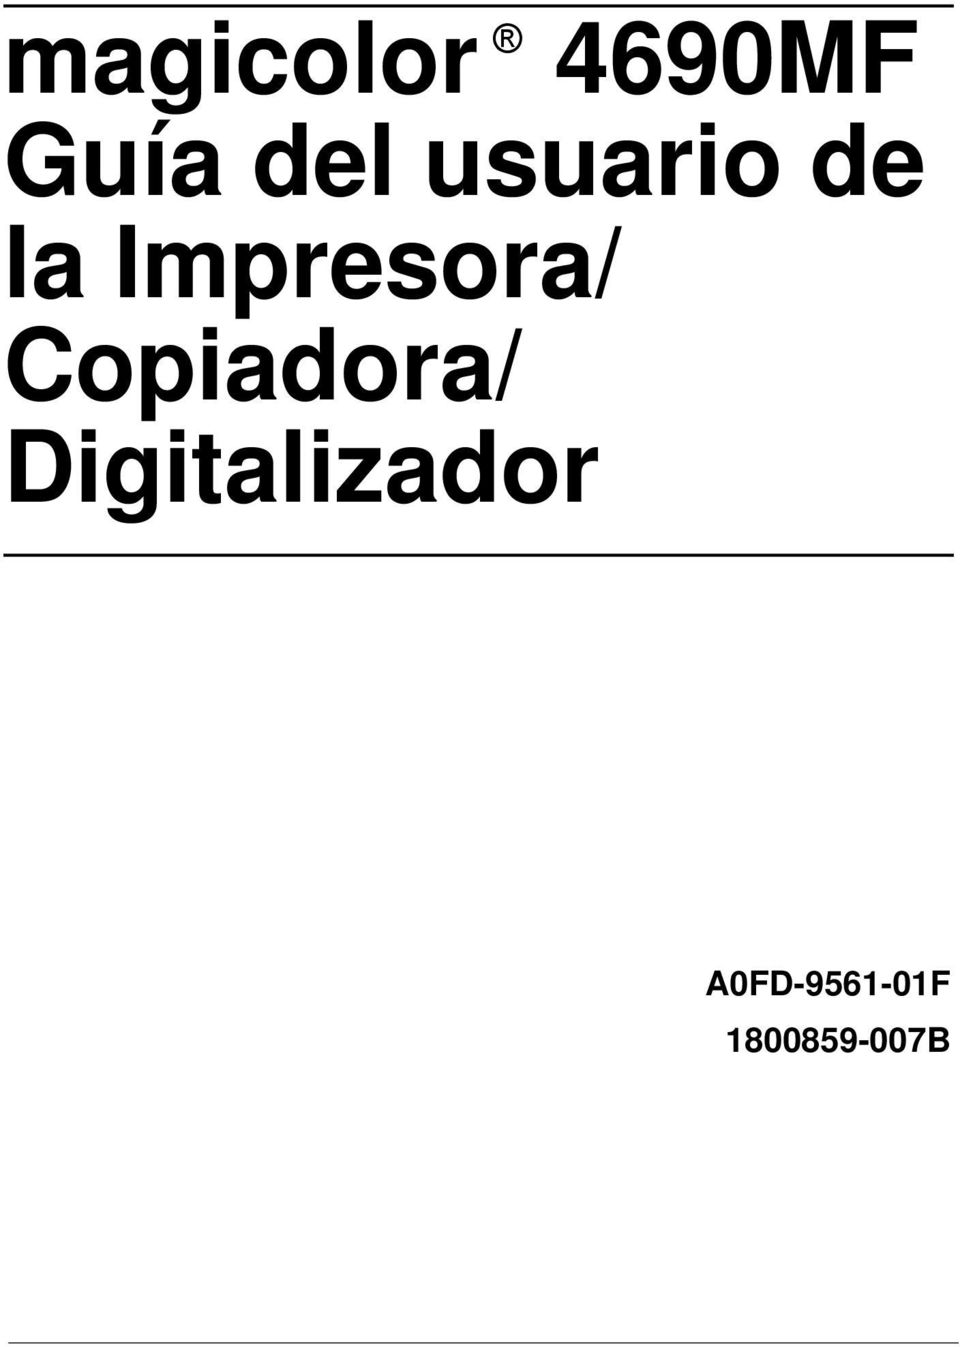 Copiadora/ Digitalizador